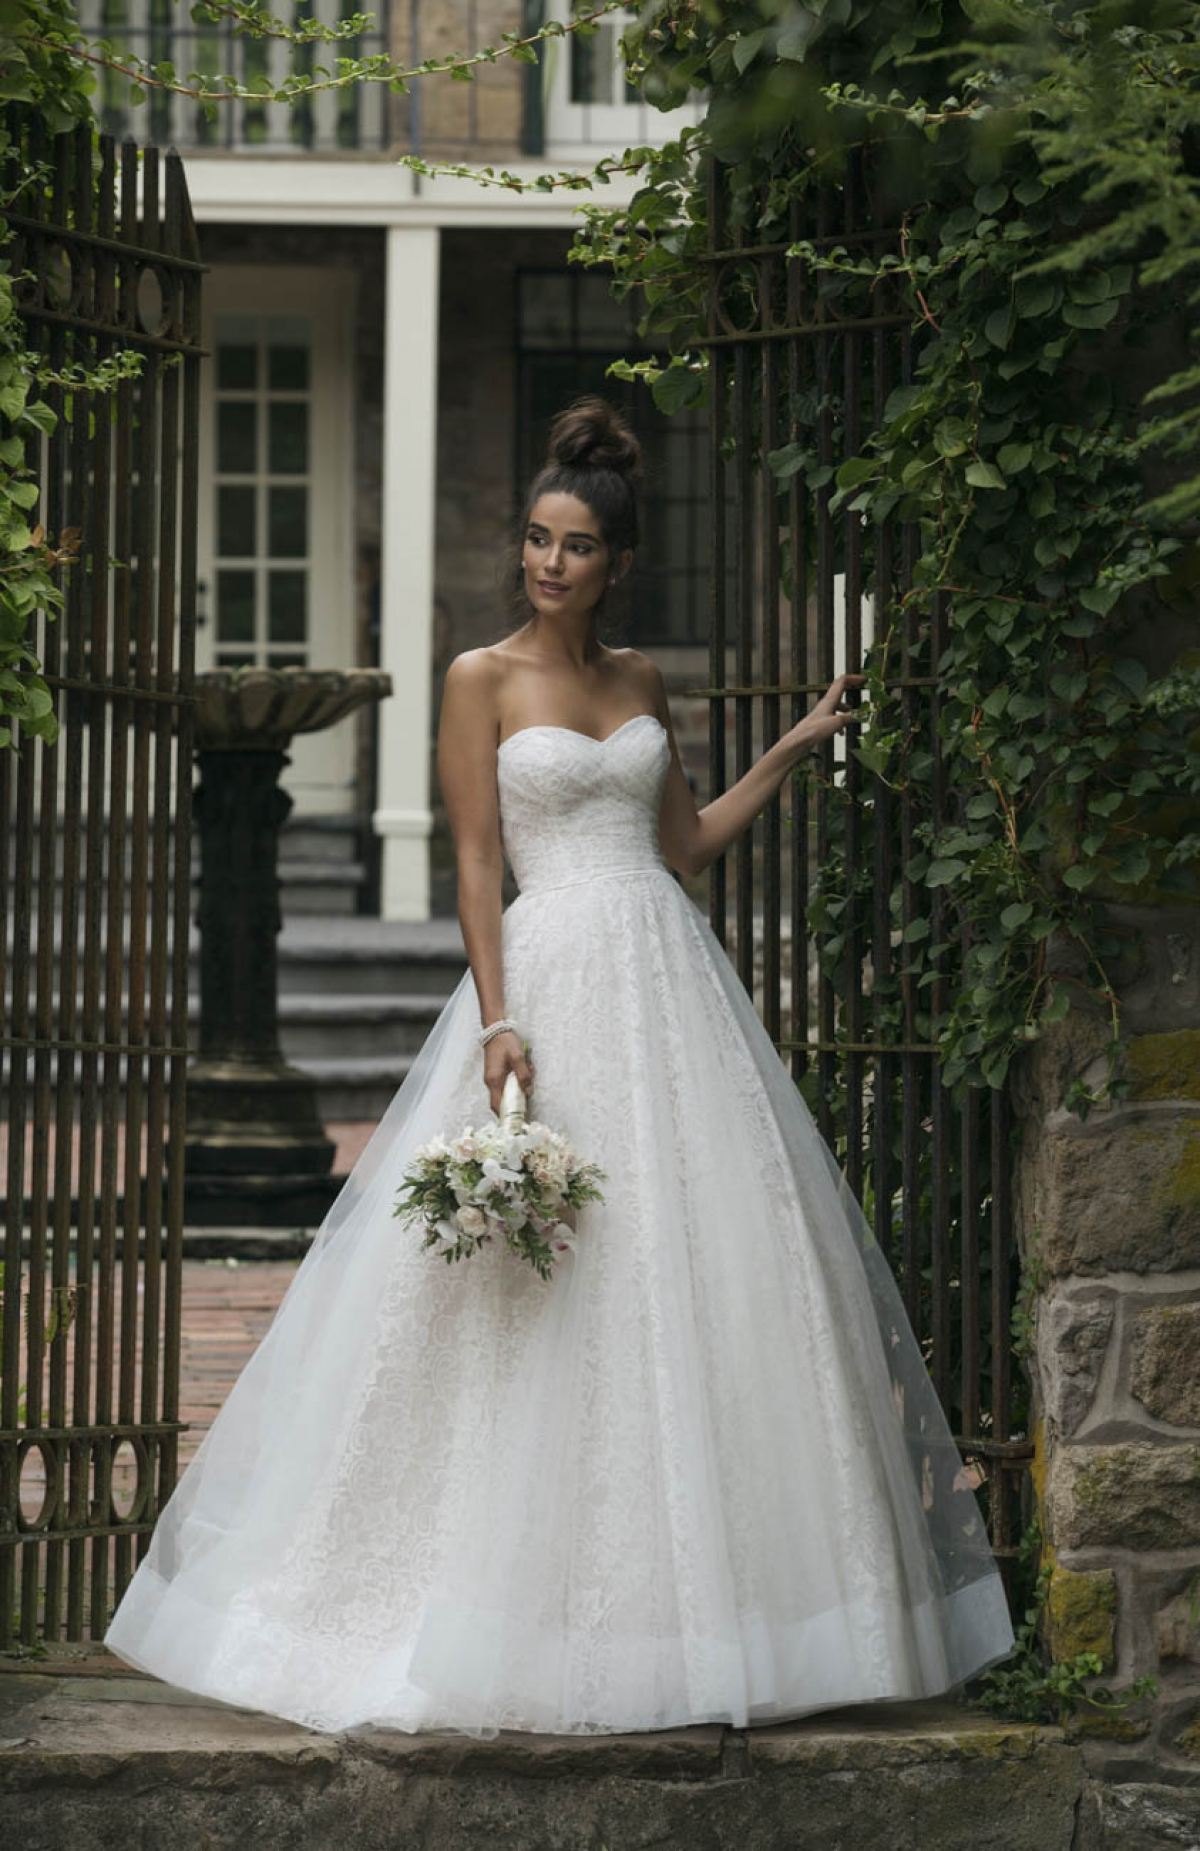 2019 Wedding Trends.Bridal Trends For 2019 What Wedding Dress Will You Wear